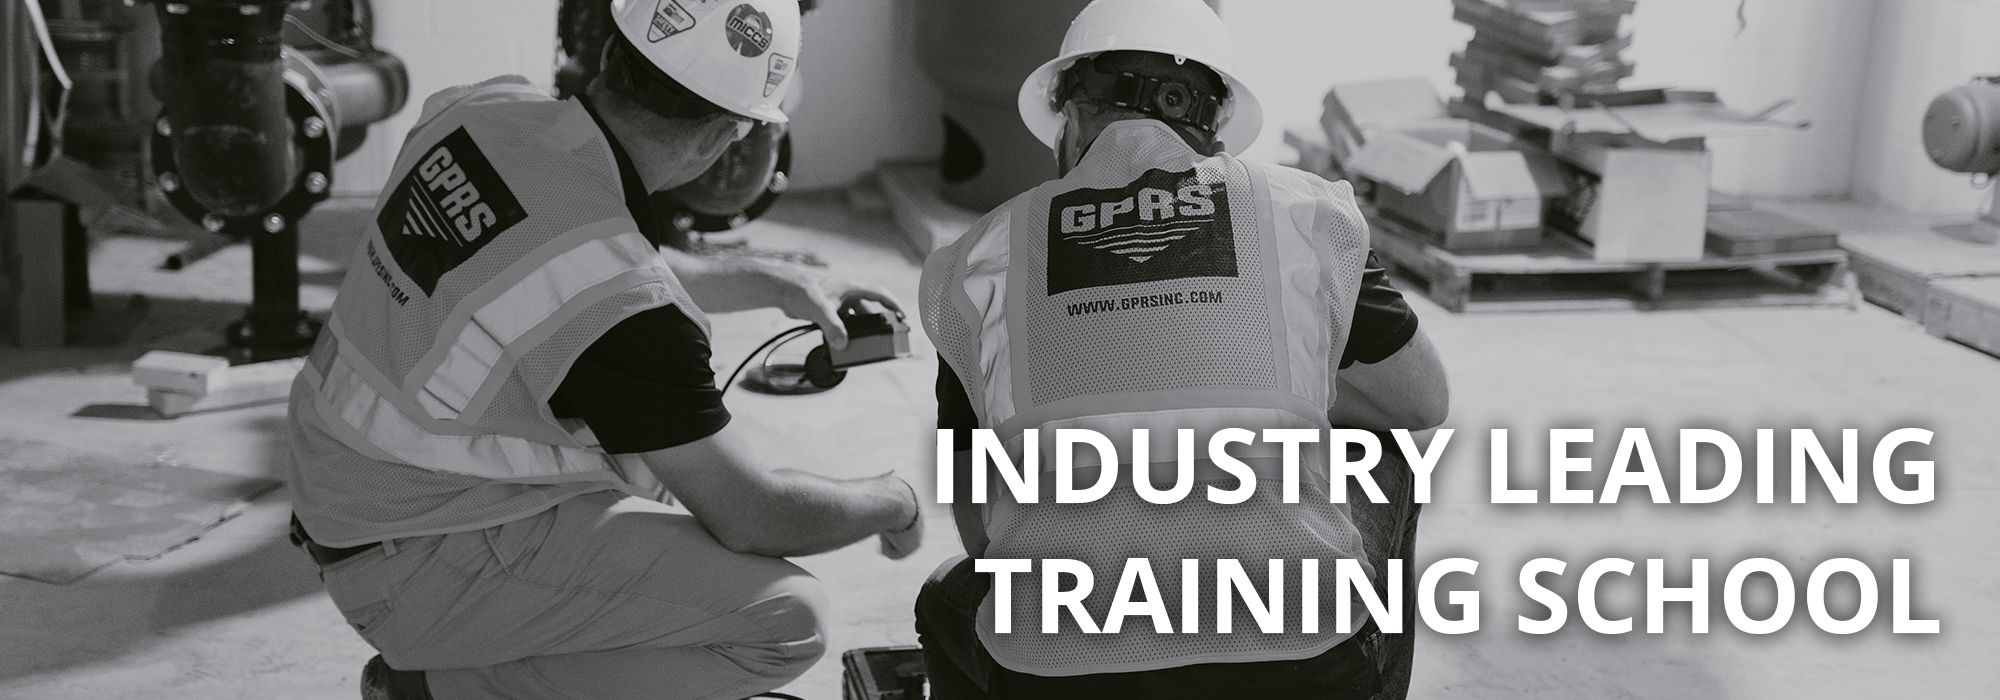 Industry Leading Training School